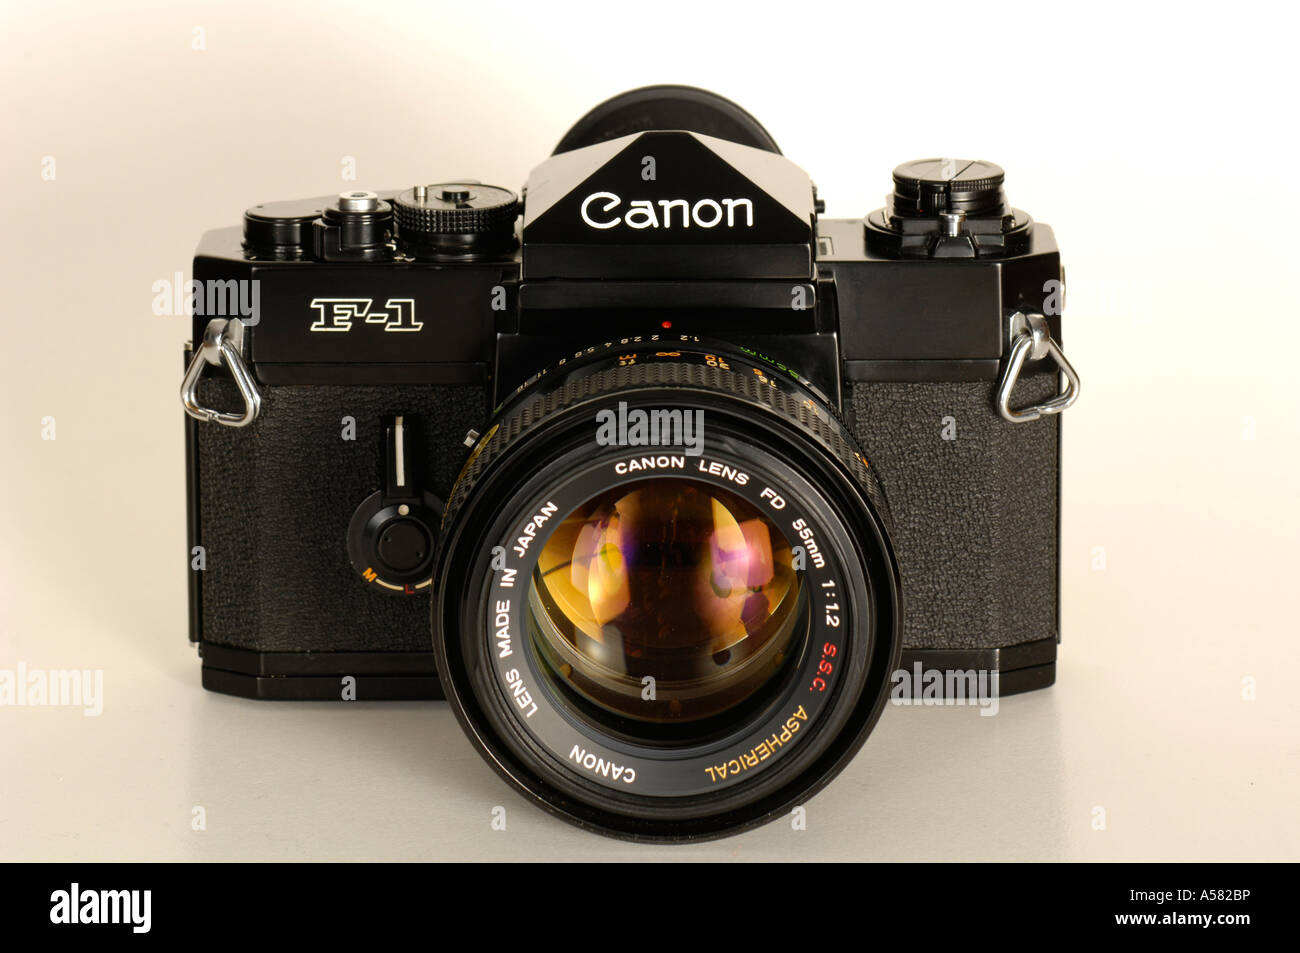 Analogue single lens reflex camera Canon F-1 of the 1970s front - Stock Image